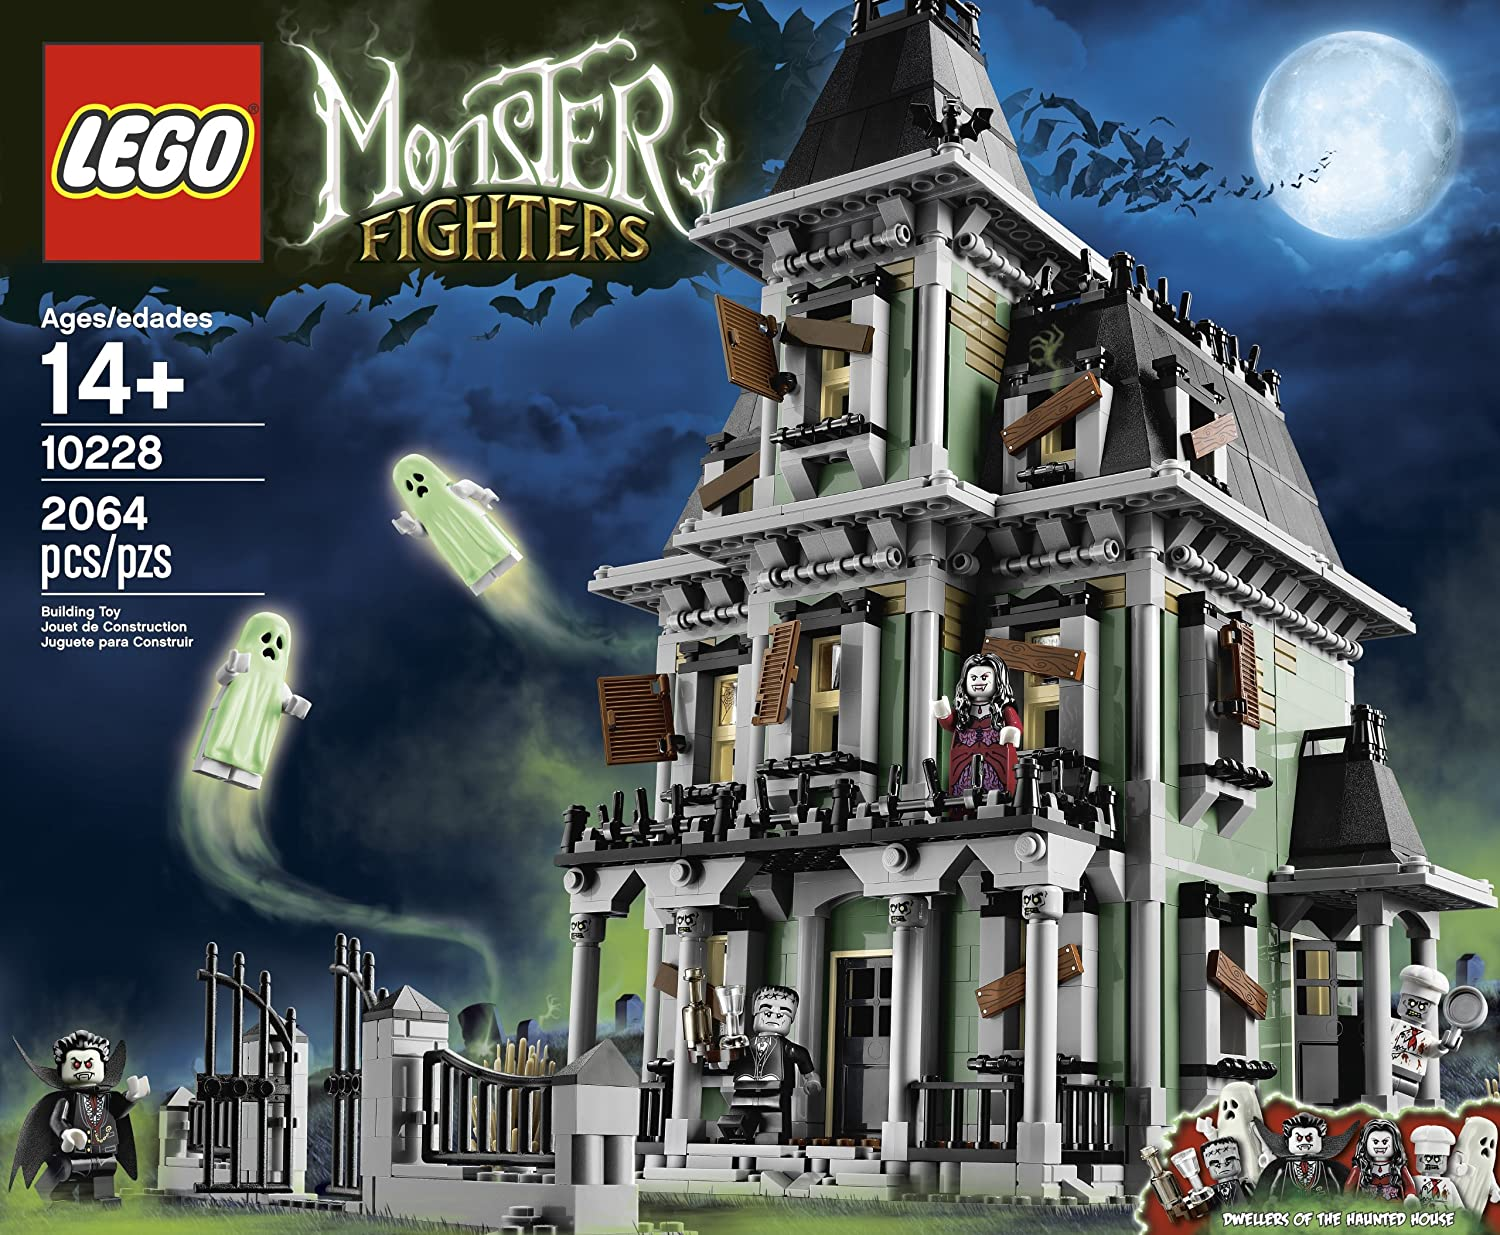 amazoncom lego monster fighters haunted house 10228 toys games - Lego Halloween Train